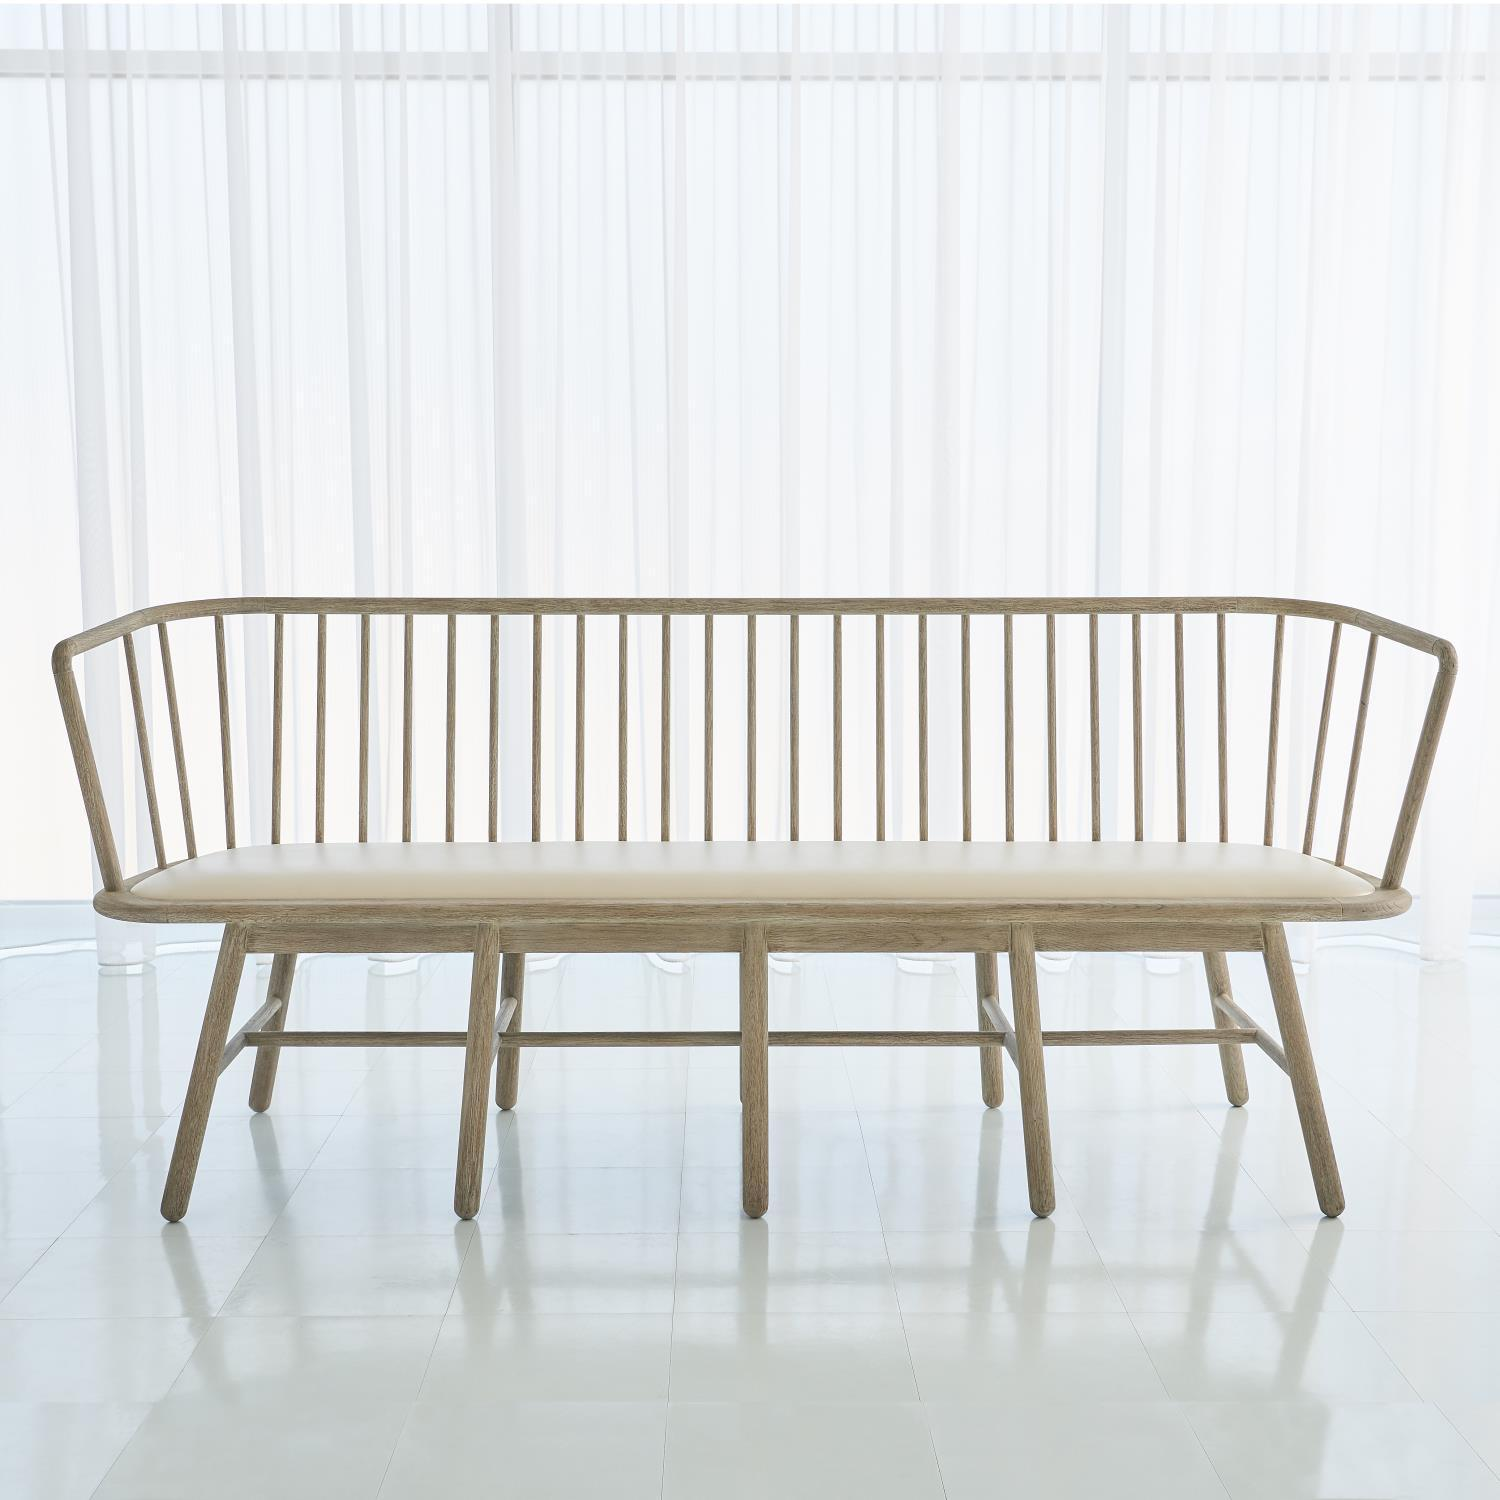 Global Views Global Views Spindle Long Bench Beige Leather 7.20199